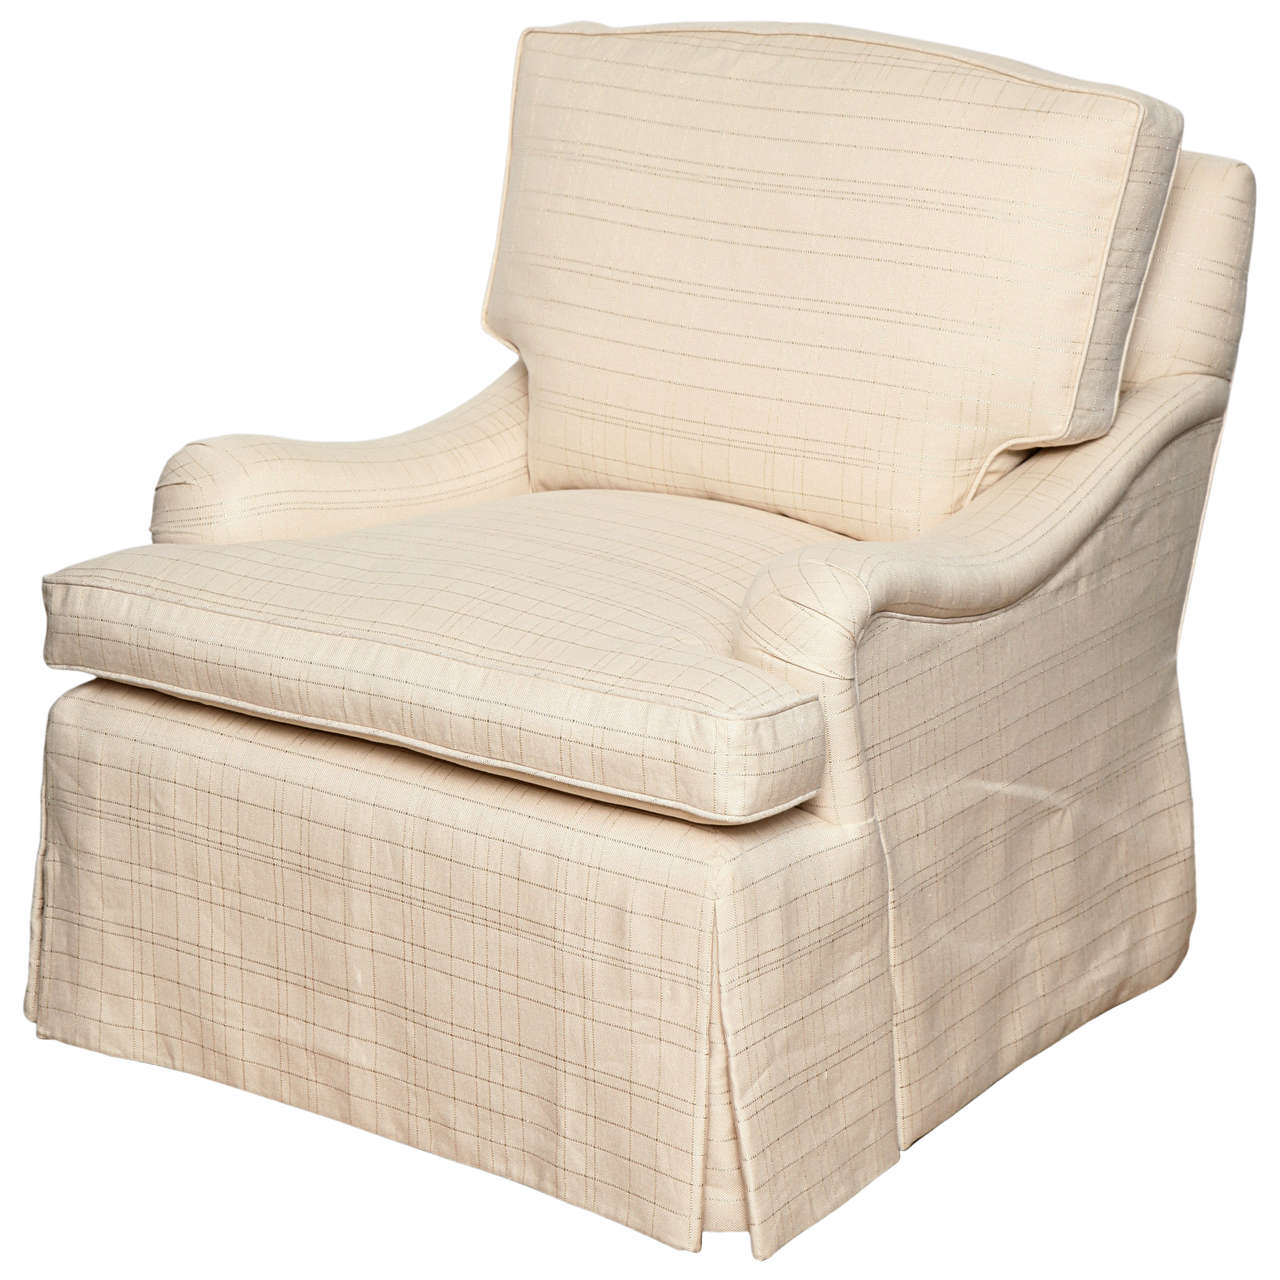 swivel upholstered chairs chair cover hire cork x jpg